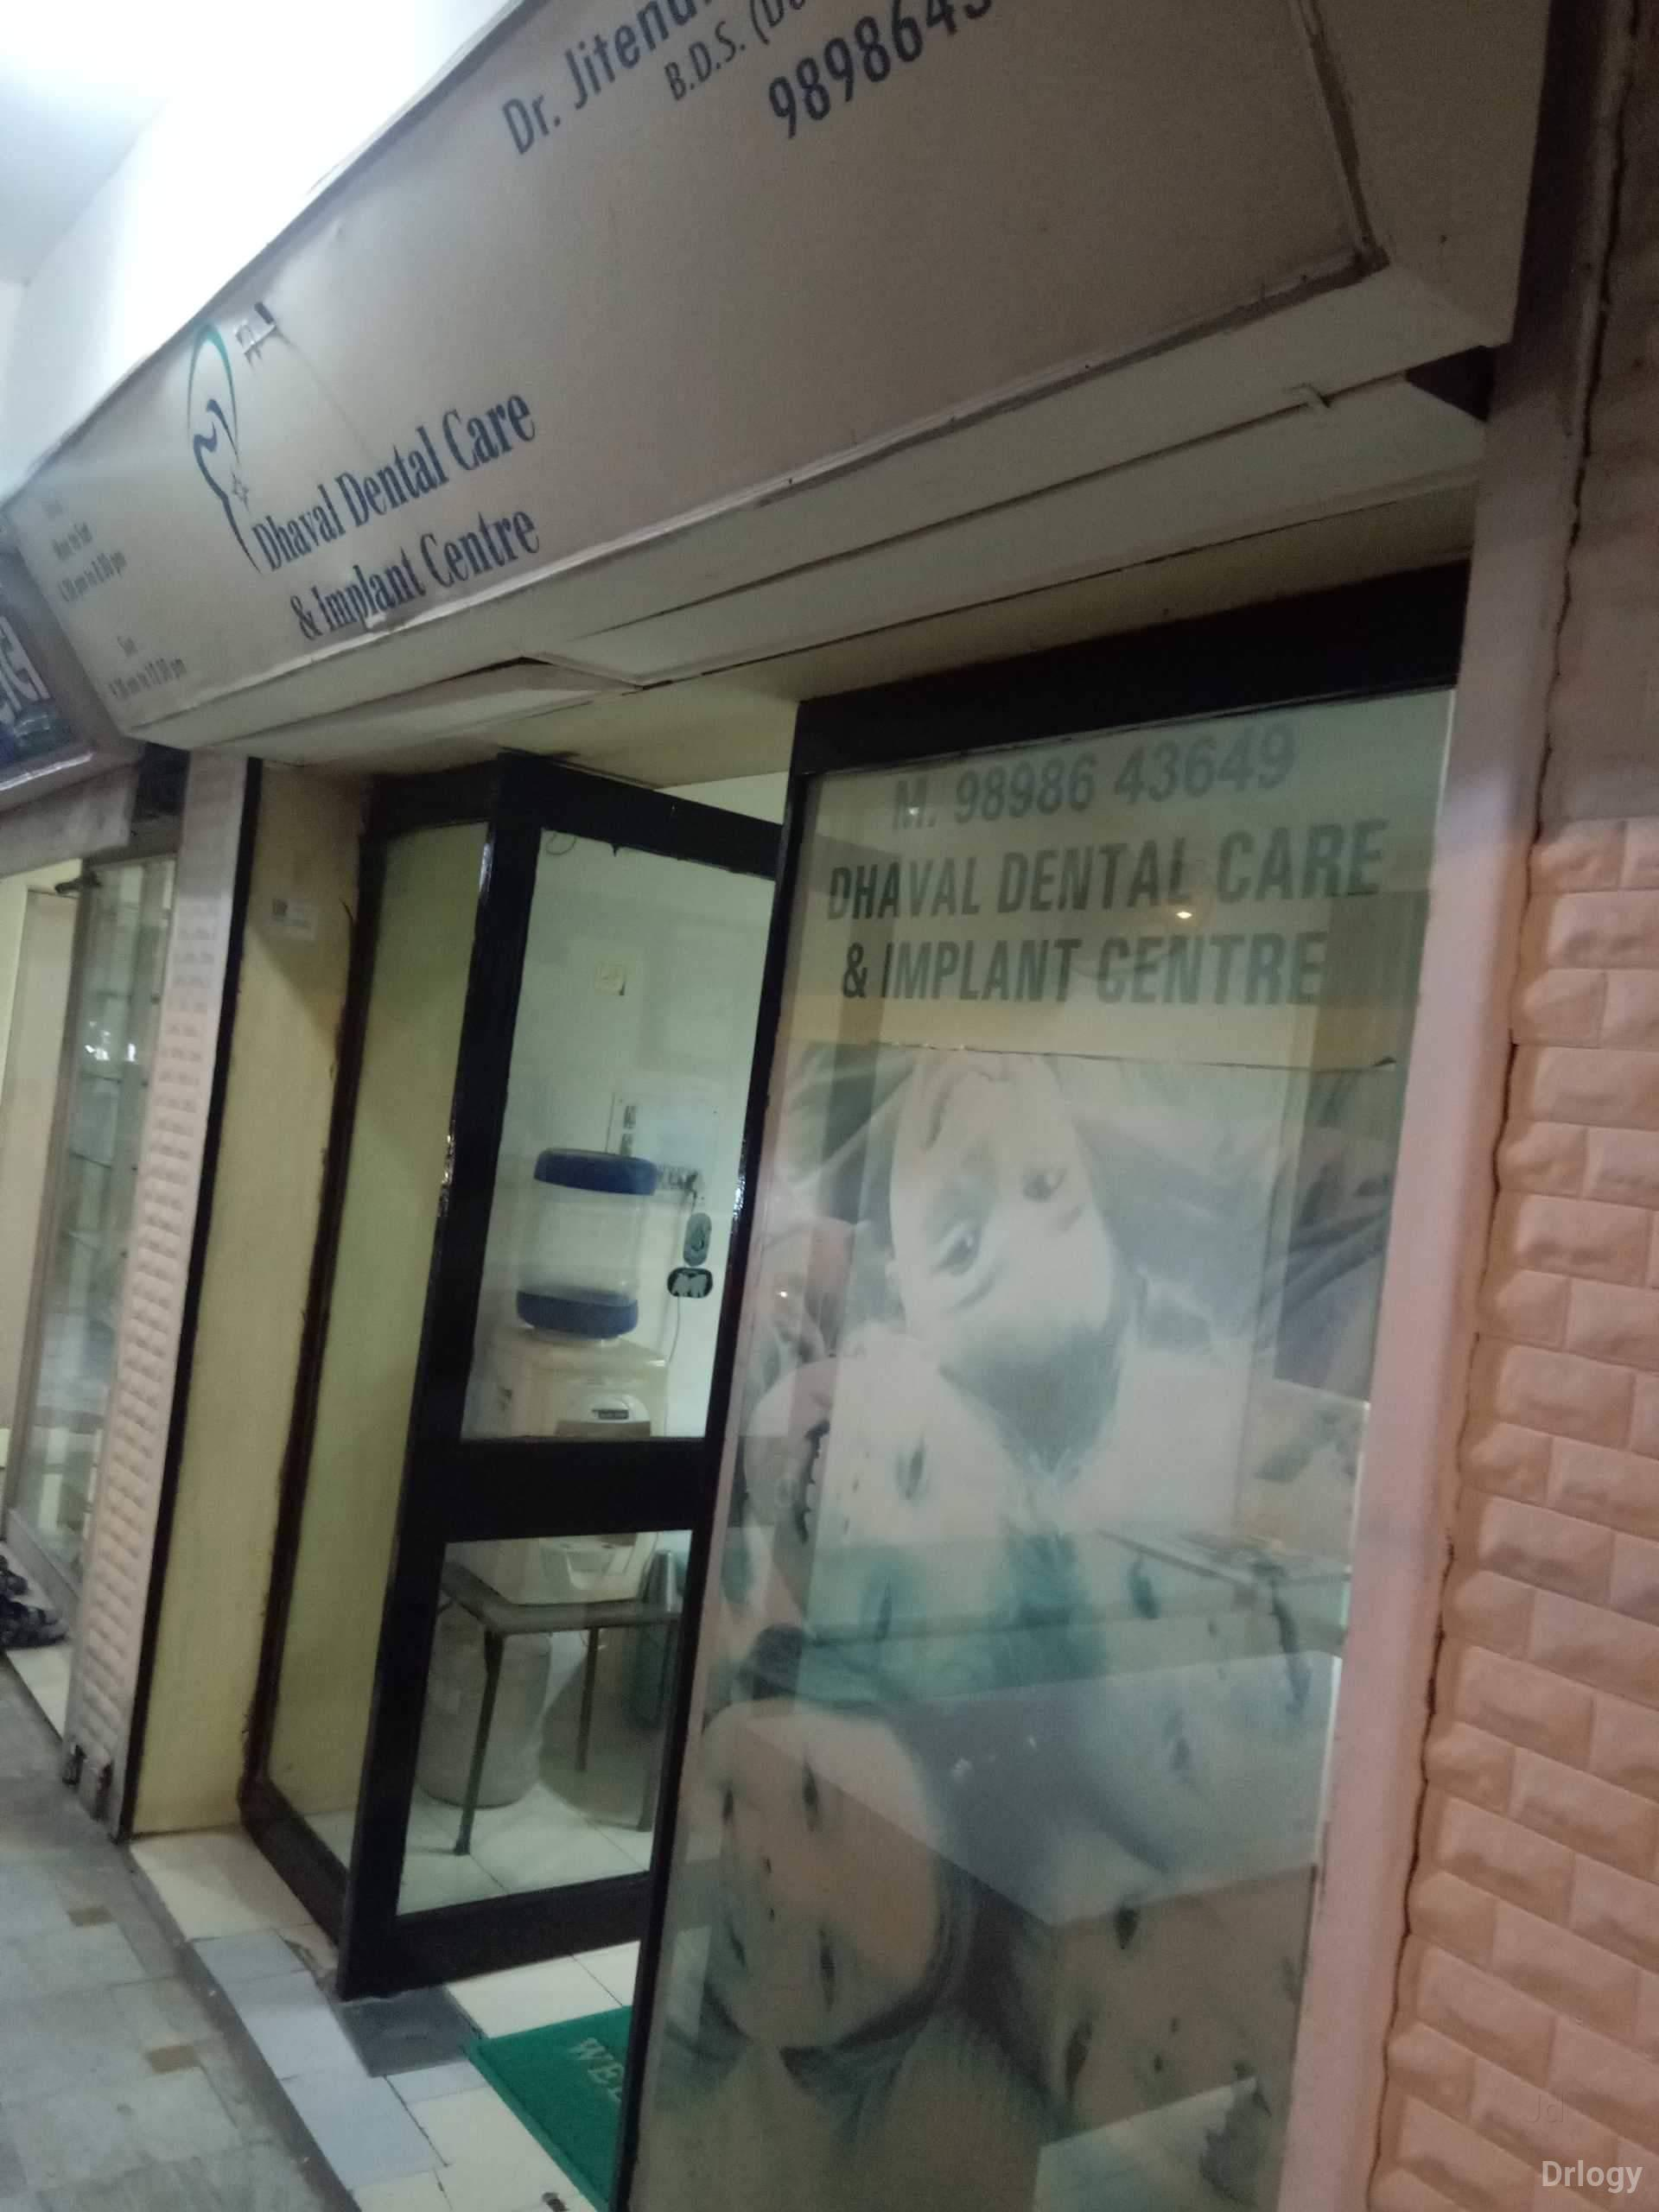 Dhaval Dental Care & Implant Centre in Ahmedabad